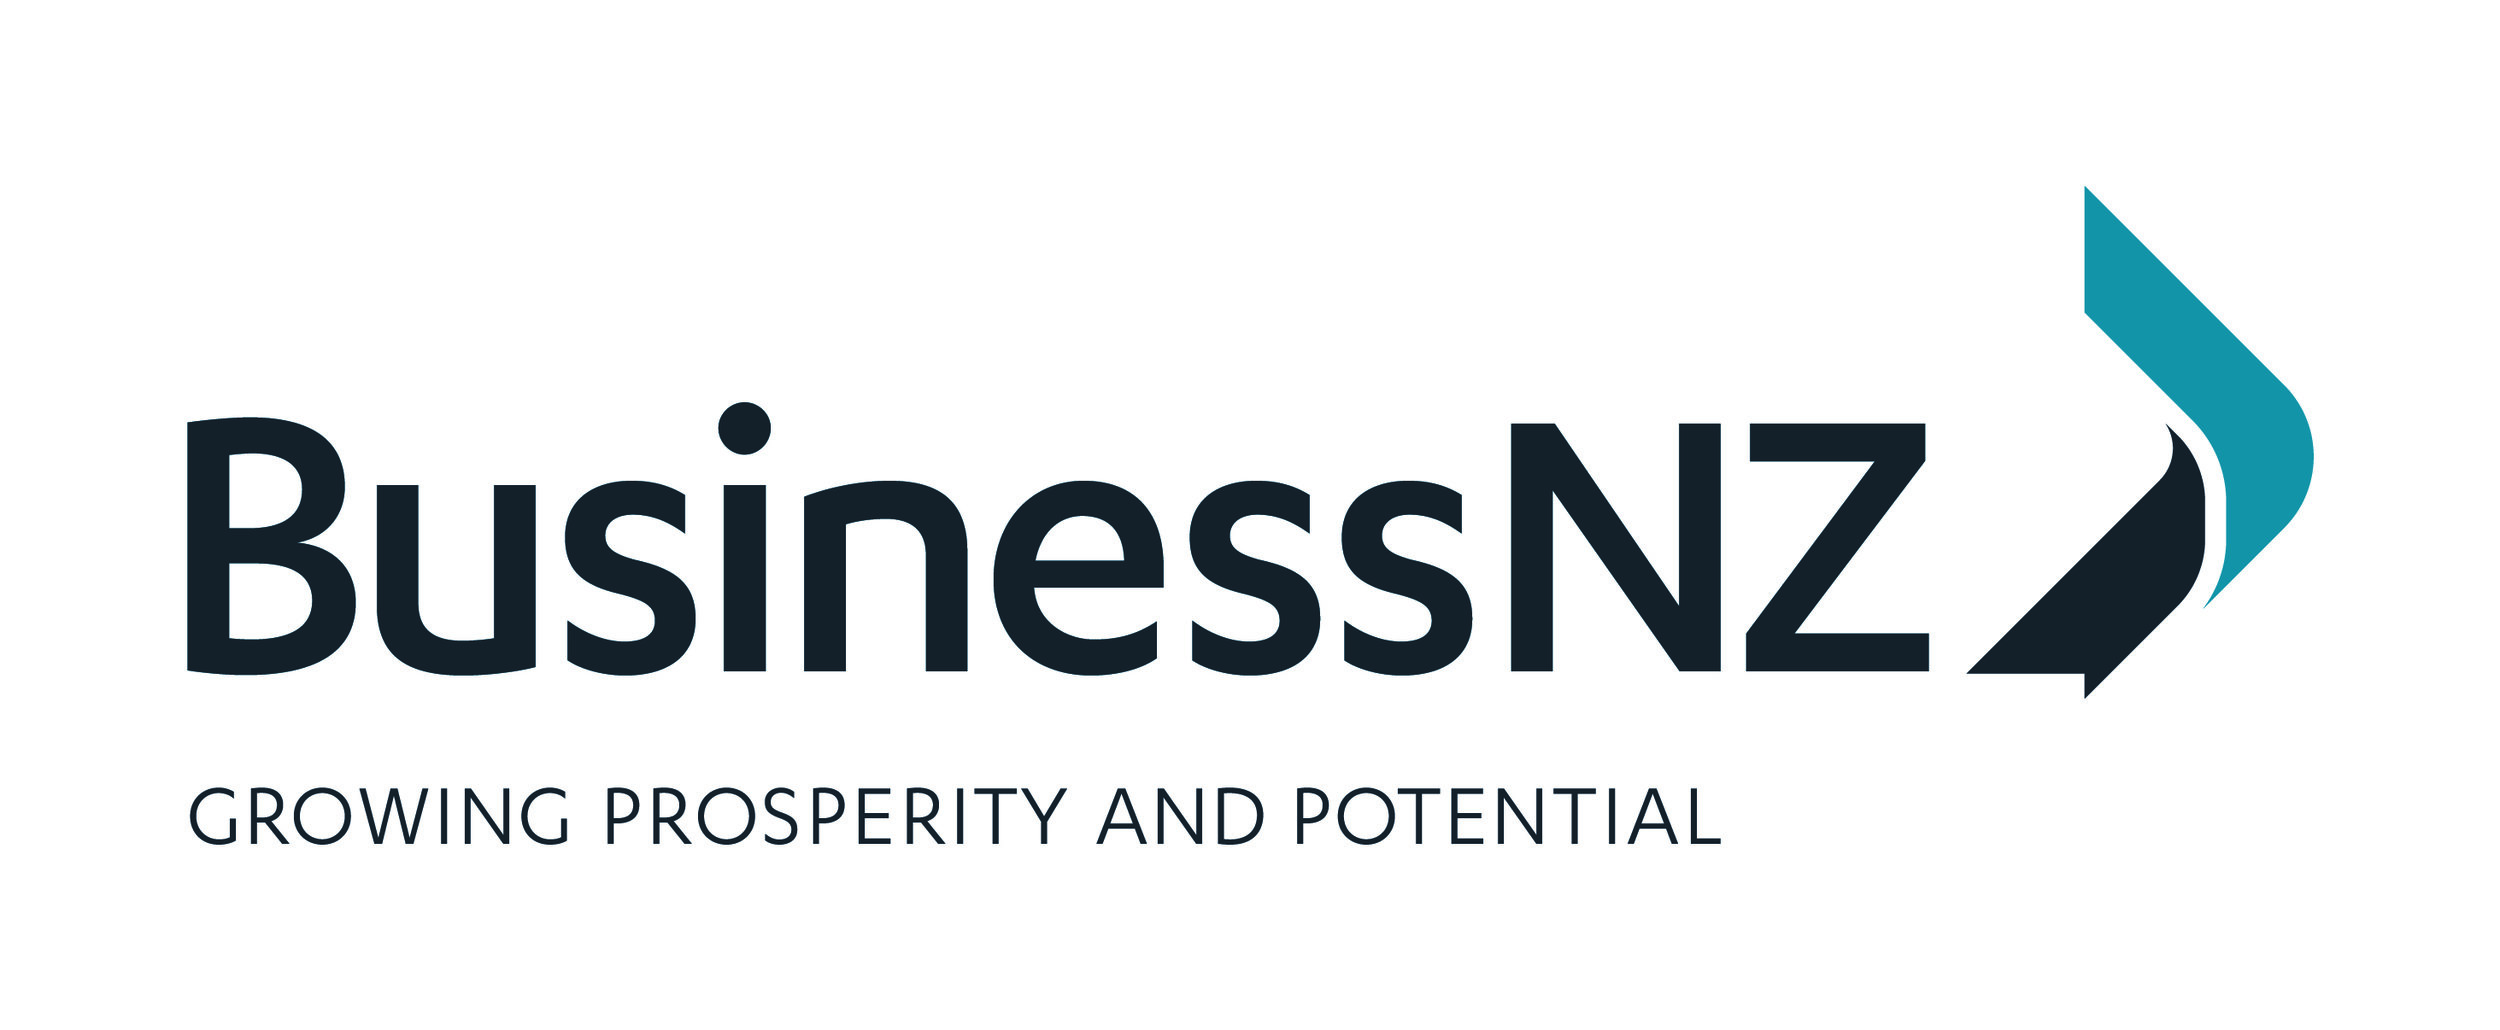 BusinessNZ main logo.jpg